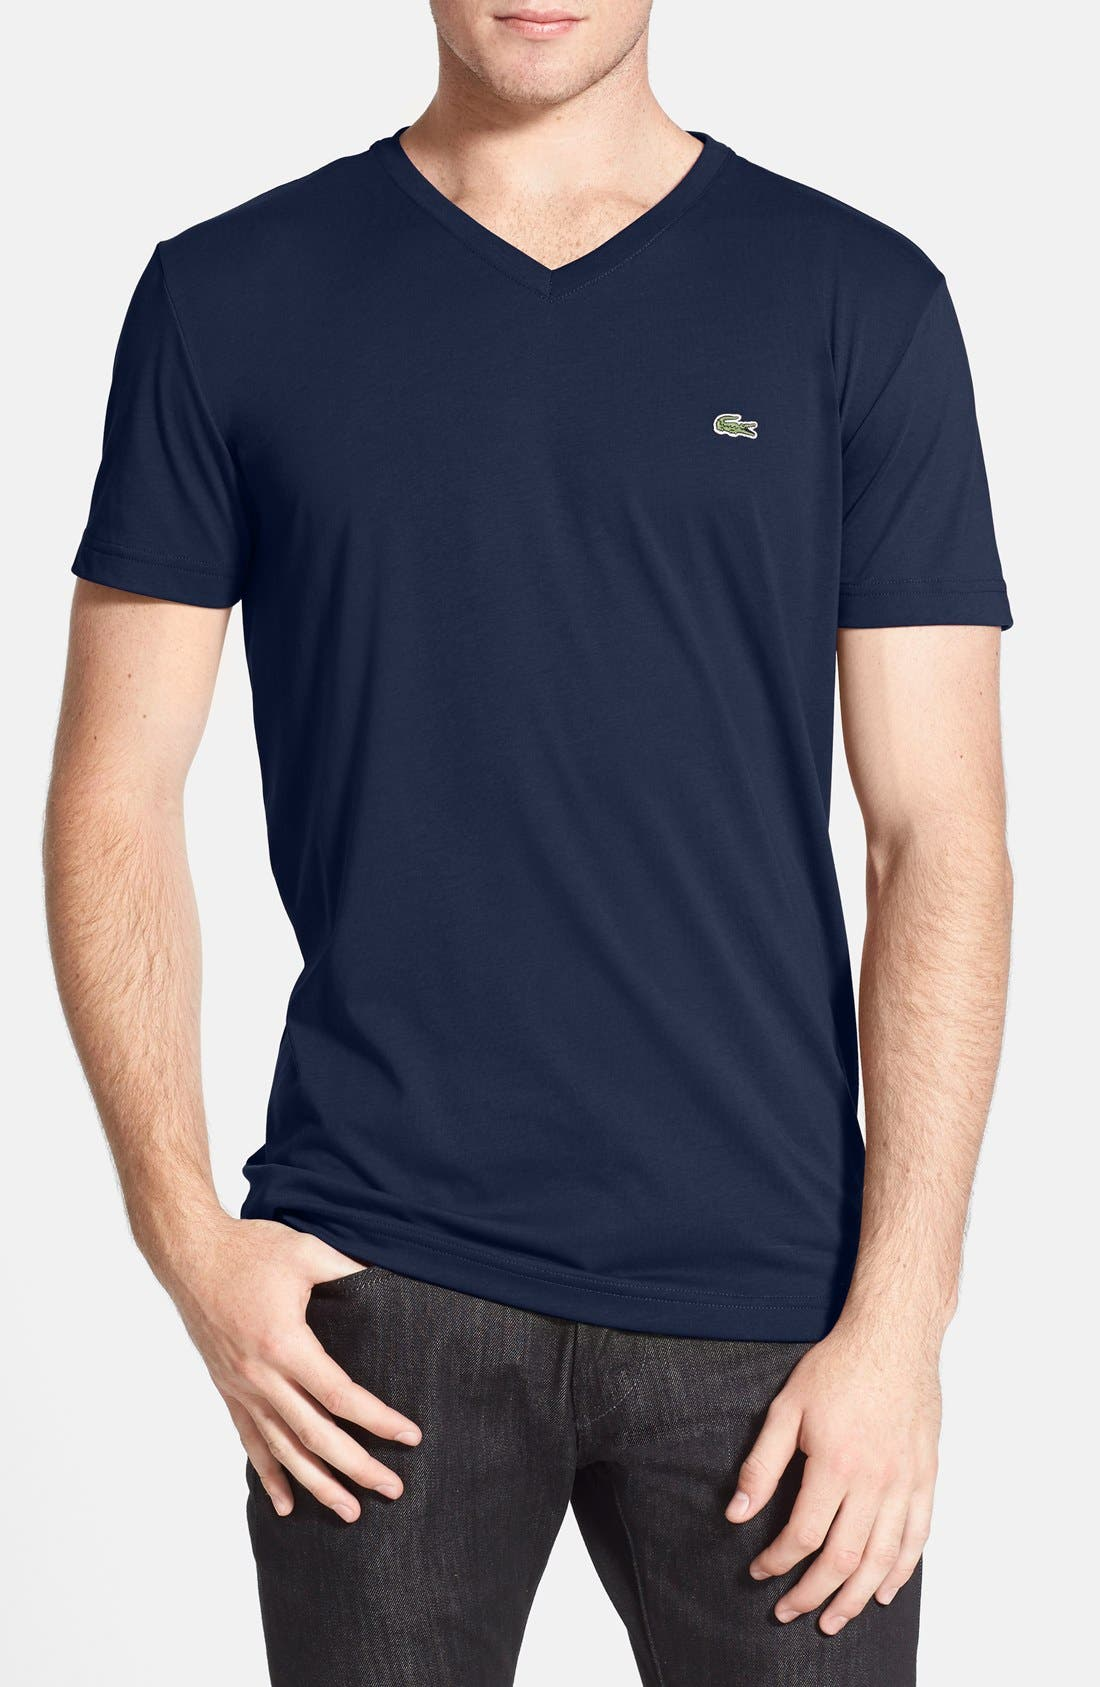 Alternate Image 1 Selected - Lacoste Pima Cotton Jersey V-Neck T-Shirt